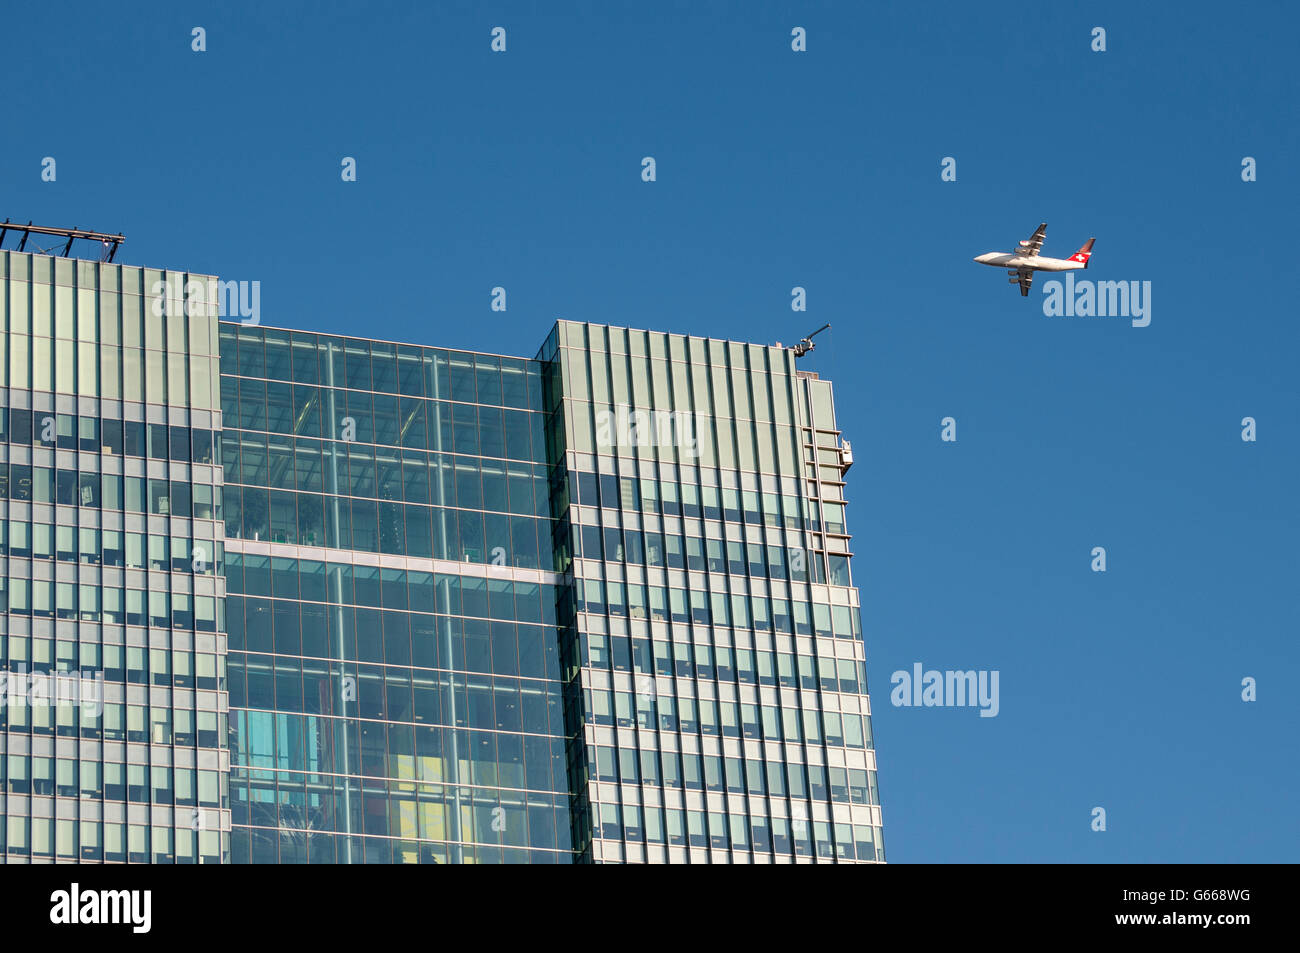 British Aerospace Avro RJ100 Airliner and Barclays Bank HQ at One Churchill Place designed by HOK International - Stock Image